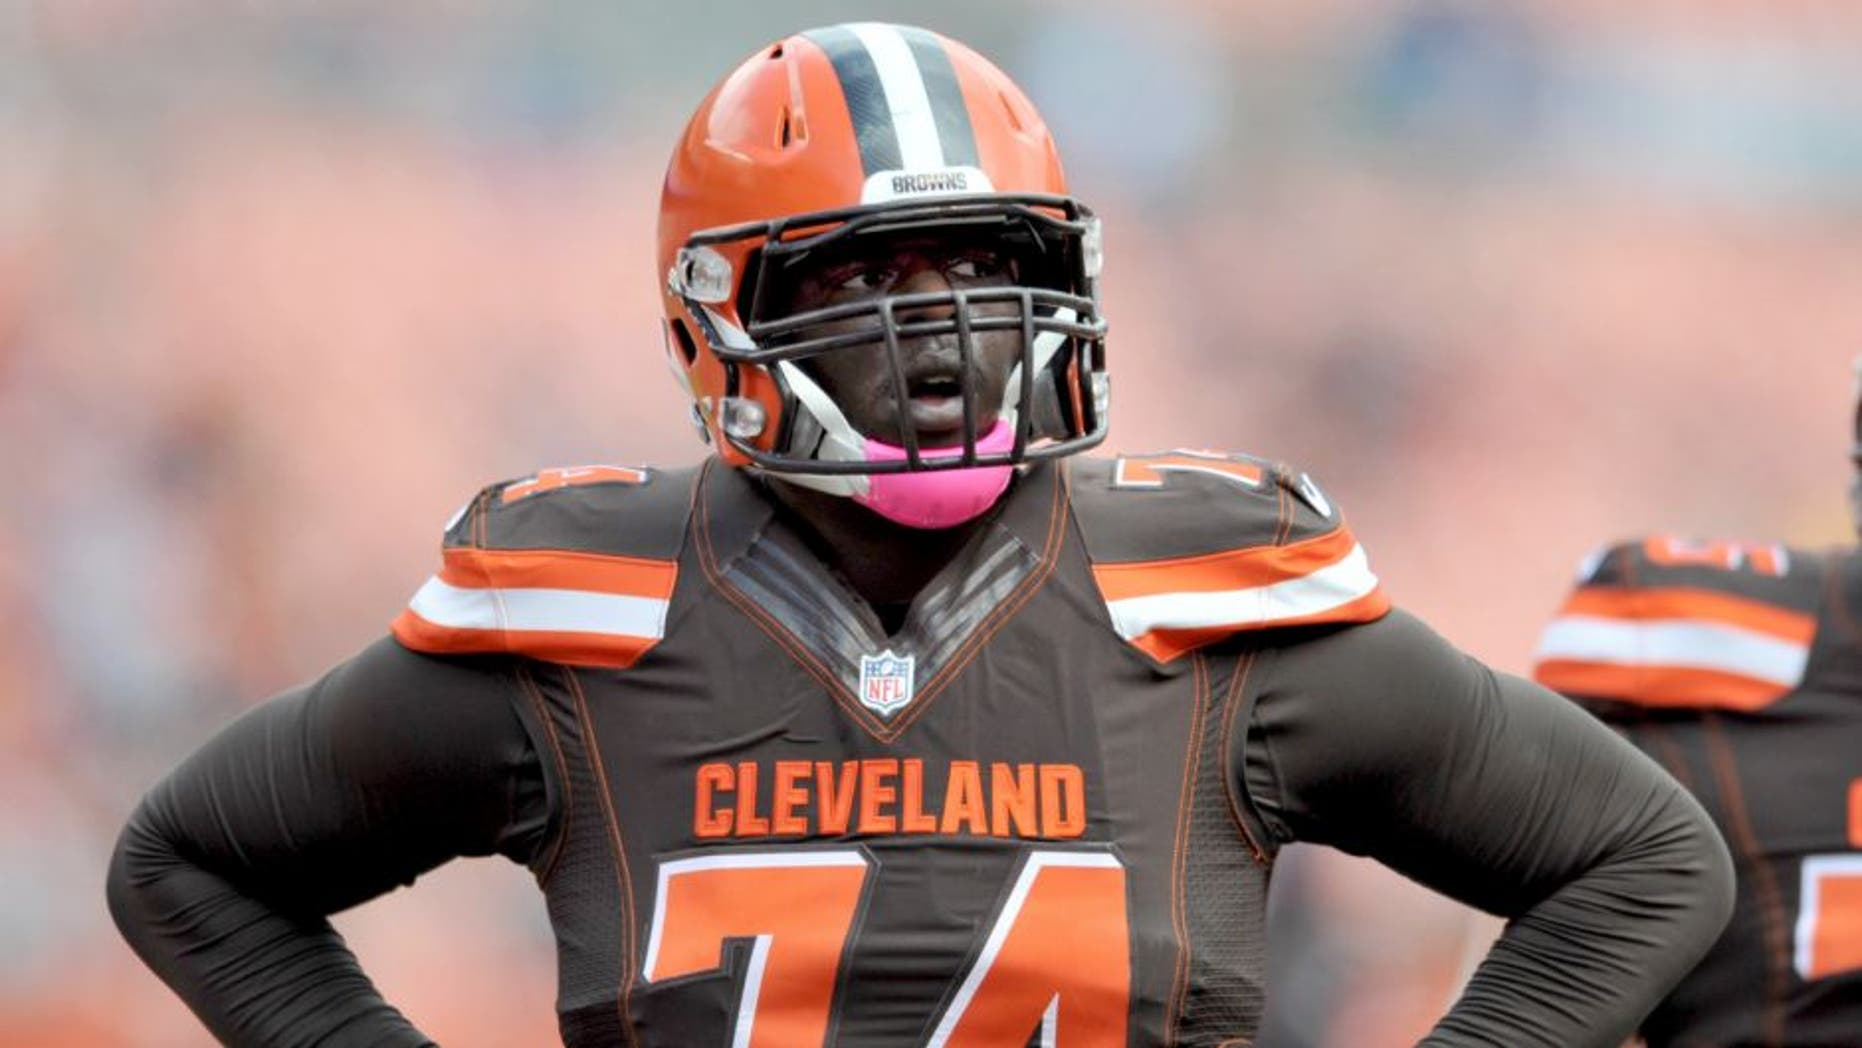 CLEVELAND, OH - OCTOBER 18, 2015: Offensive lineman Cameron Erving #74 of the Cleveland Browns walks onto the field prior to a game against the Denver Broncos on October 18, 2015 at FirstEnergy Stadium in Cleveland, Ohio. Denver won 26-23 in overtime. (Photo by Nick Cammett/Diamond Images/Getty Images)